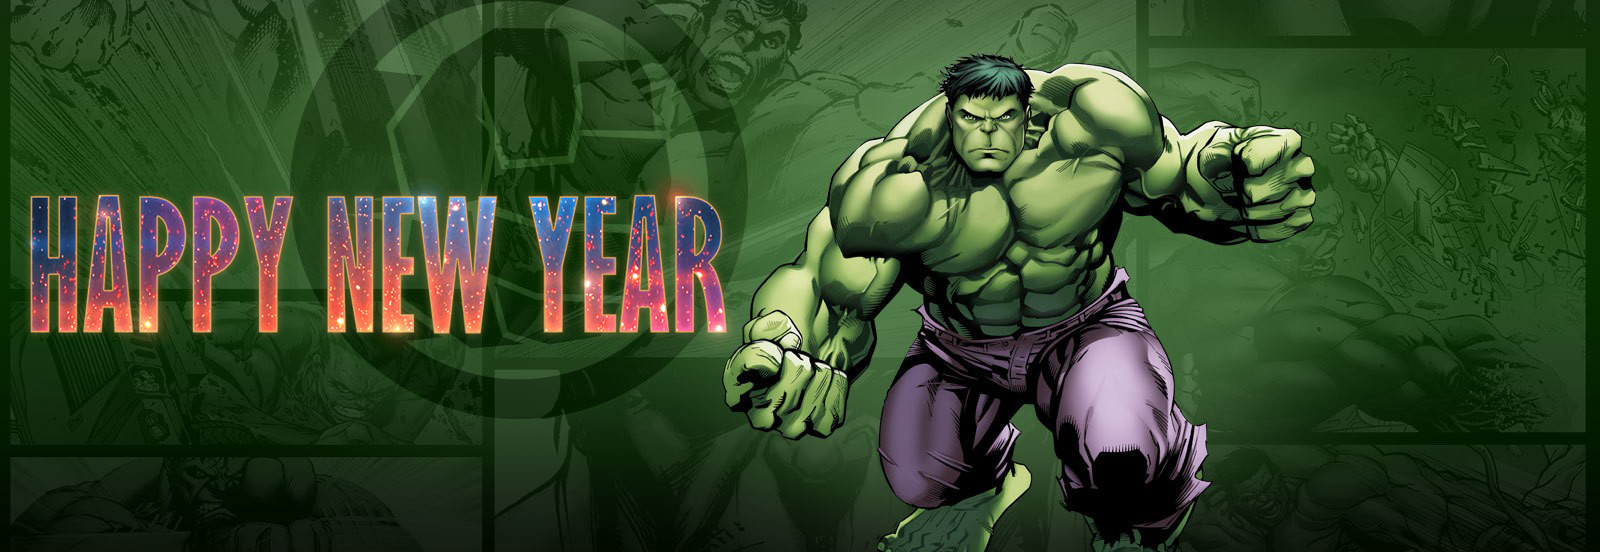 happy new year greetings wishes super hero hulk kids hd wallpaper